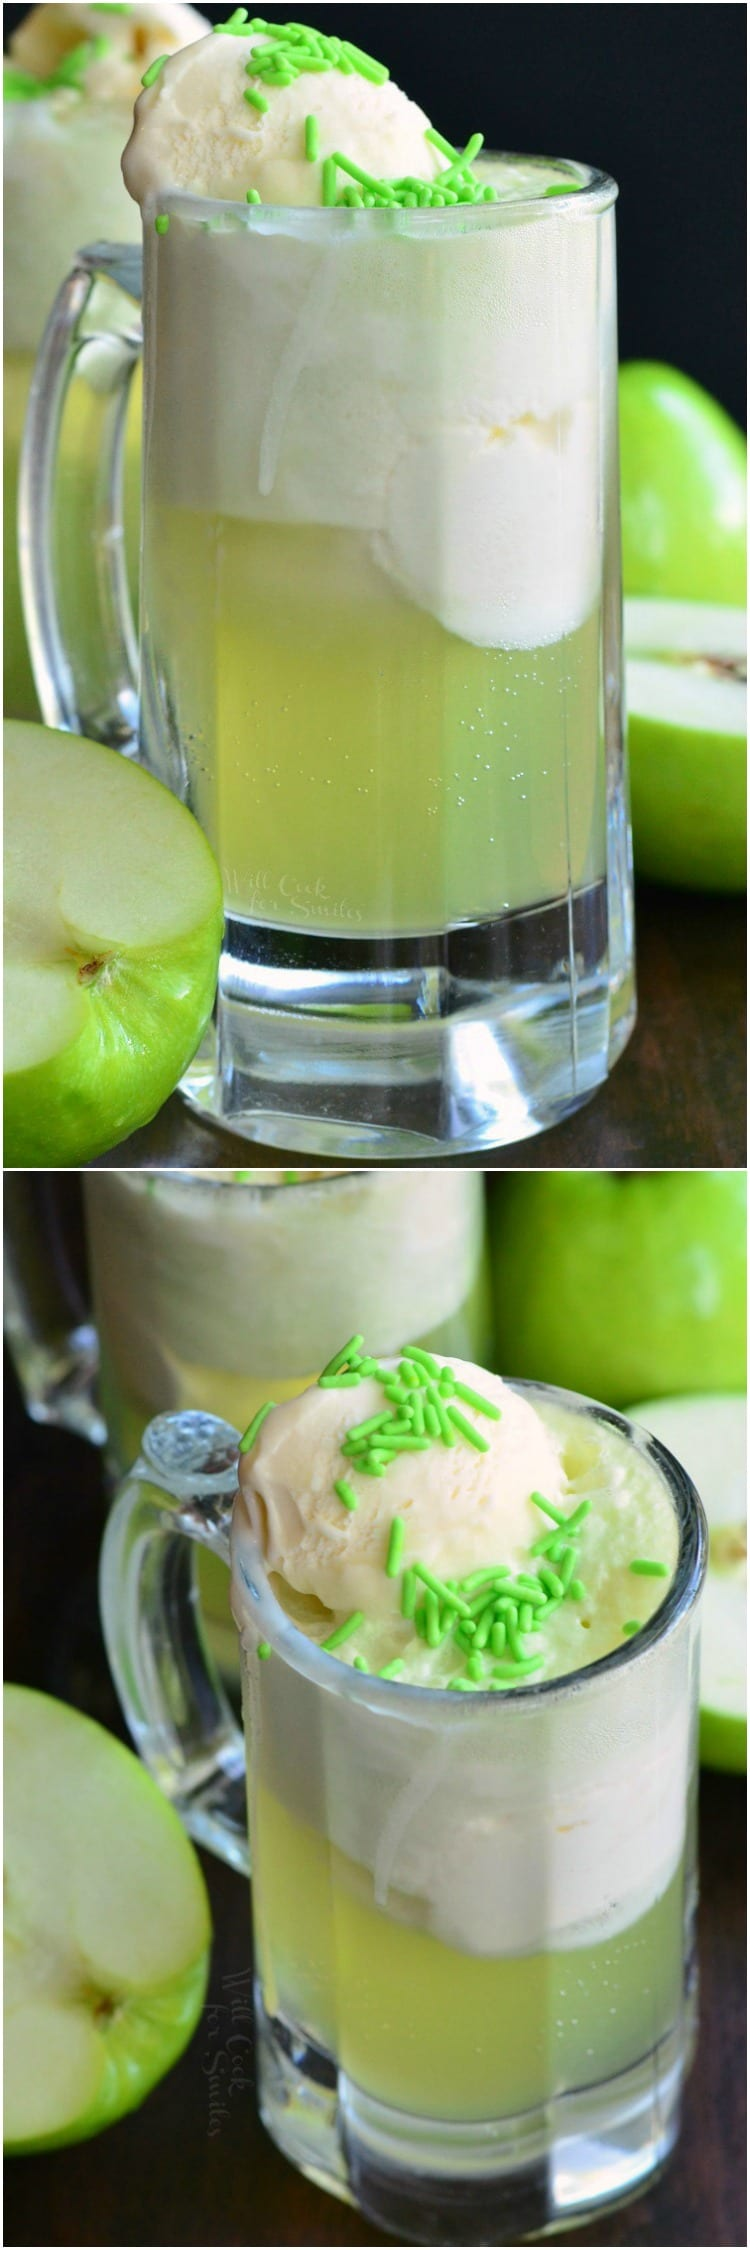 Green Apple Ice Cream Soda Float. These soda floats are made with only three ingredients and are a perfect combination of sour, sweet, and creamy flavors.